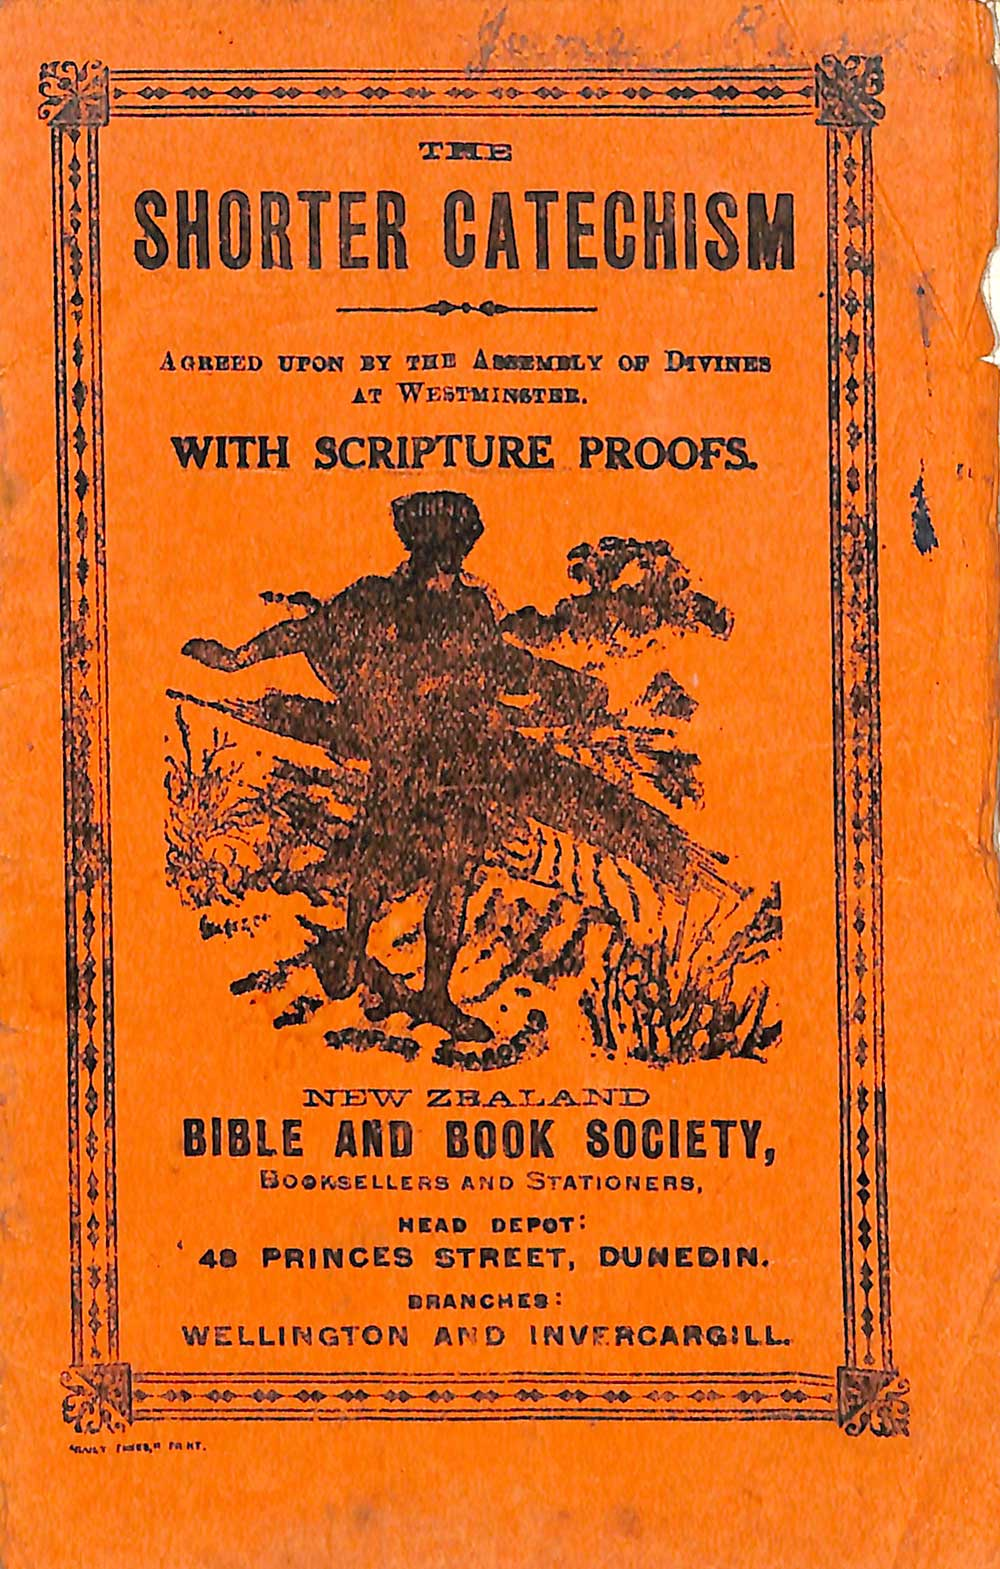 Westminster Assembly. <em>The shorter catechism: agreed upon by the Assembly of Divines at Westminster; with scripture proofs.</em> Dunedin: New Zealand Bible, Tract, & Book Society, [ca. 1890]